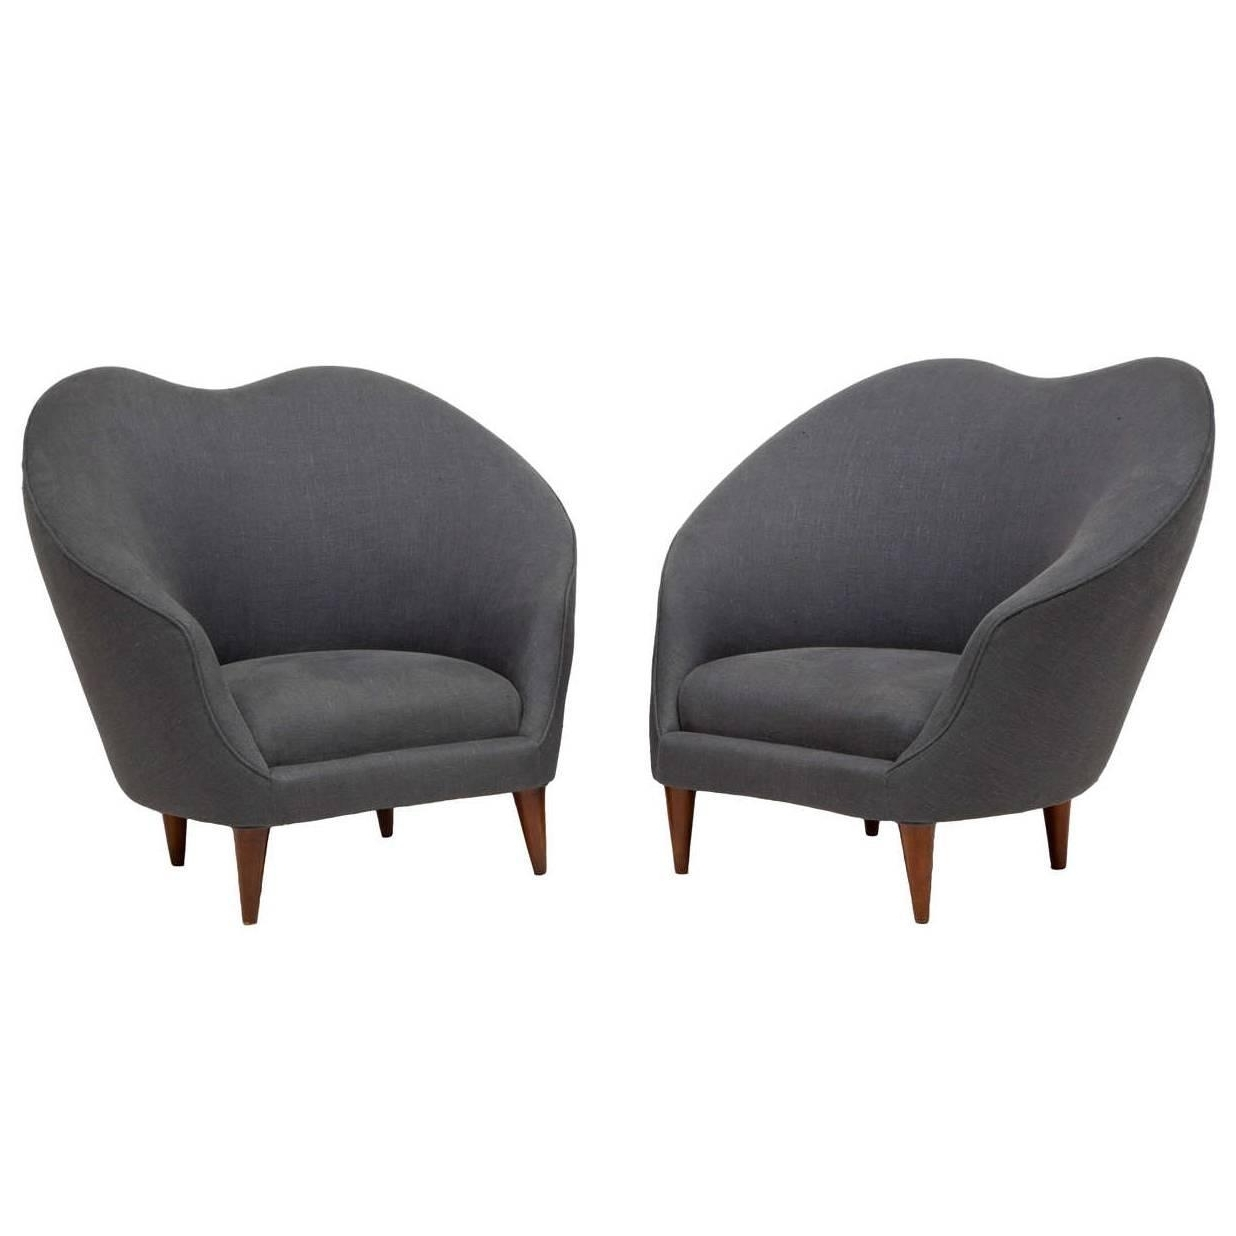 Newest Munari Chairs – Caira Mandaglio With Regard To Caira Black Upholstered Side Chairs (View 17 of 20)